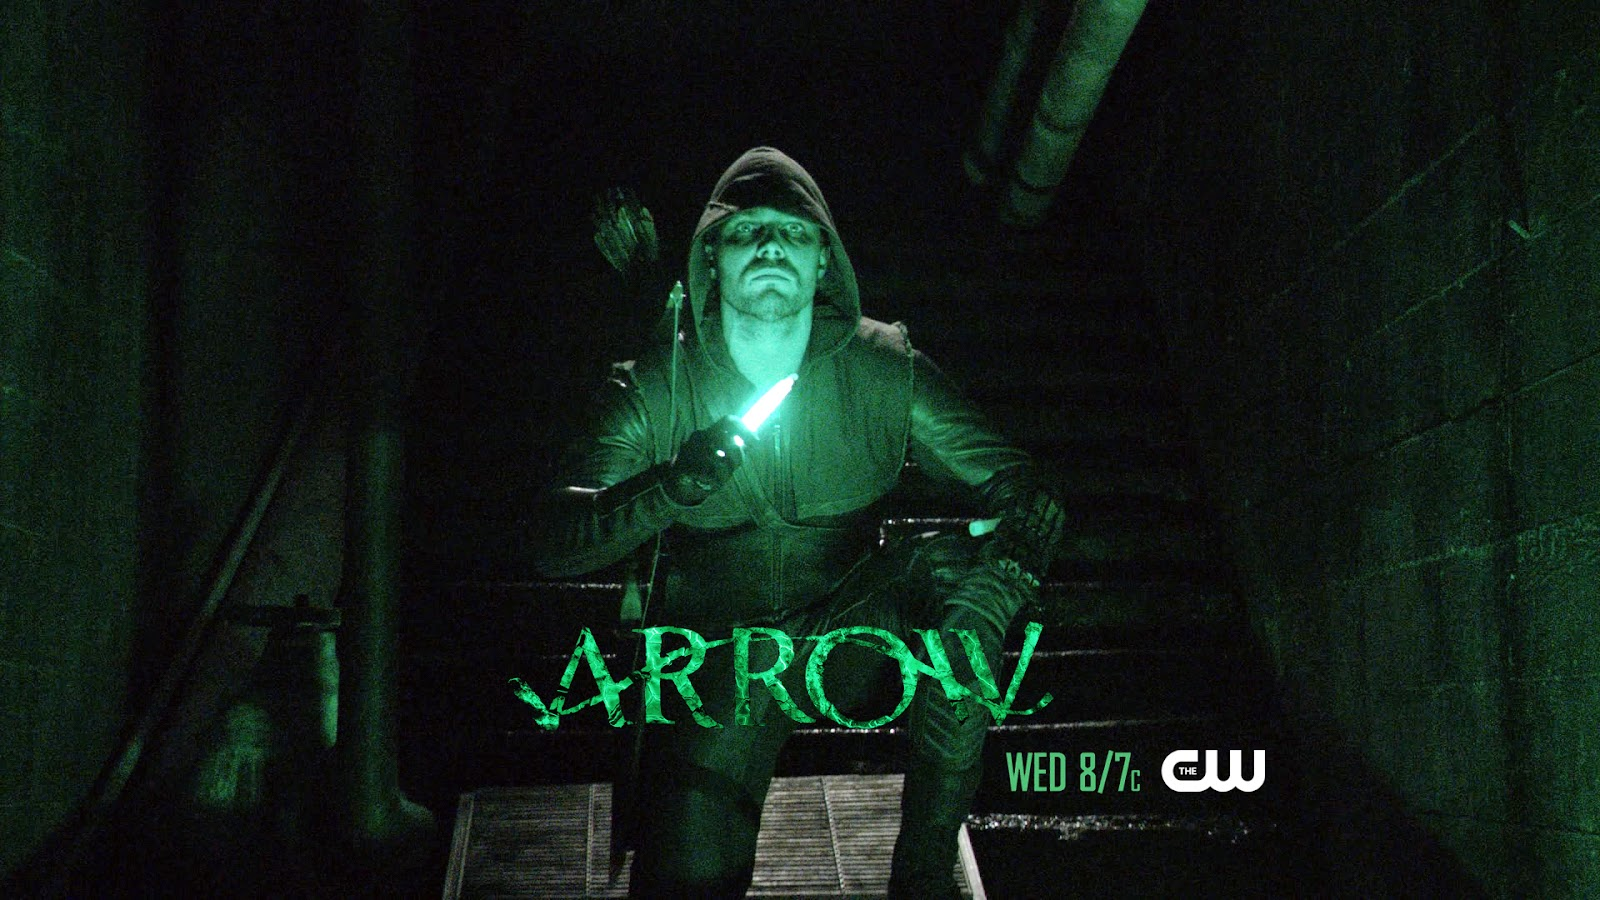 Movie Arrow HD Wallpaper 2014 season1 onlinejpg 1600x900